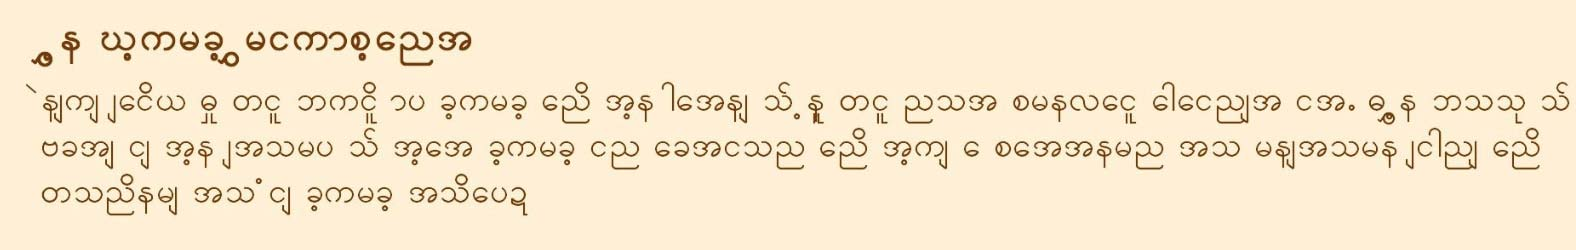 Text Written in Burmese